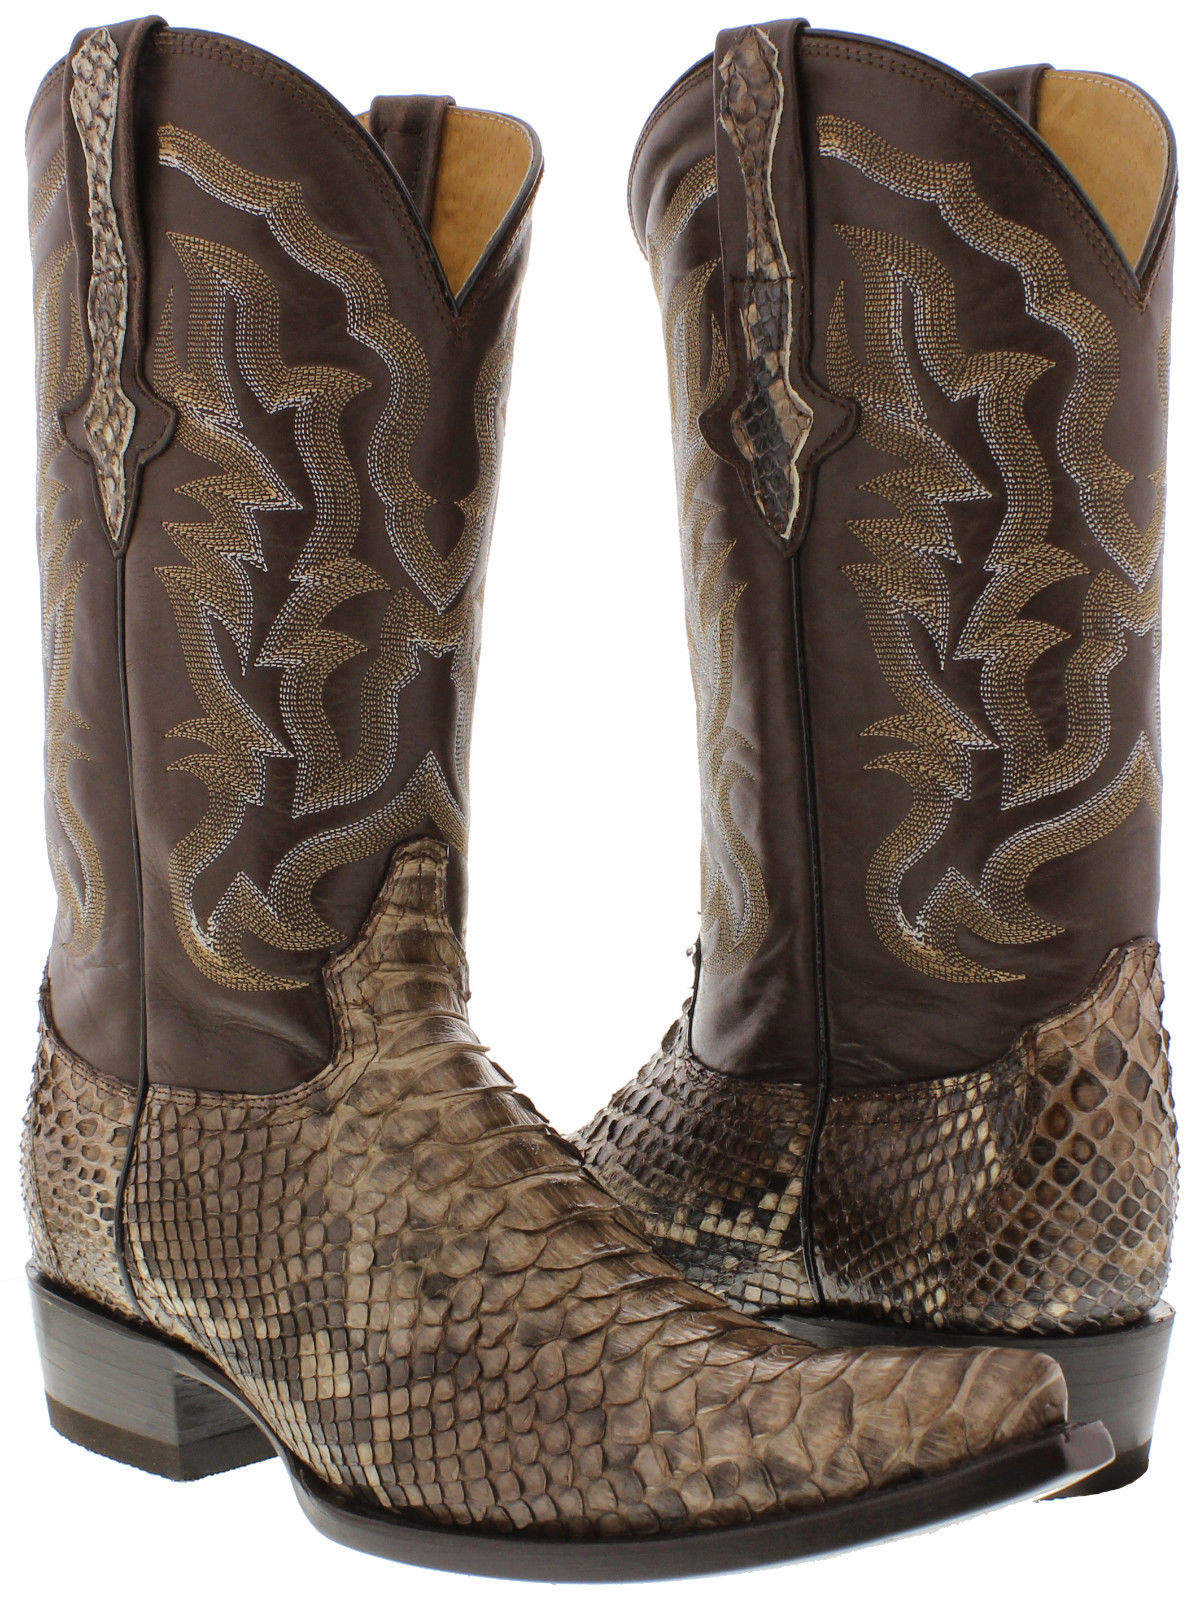 mens all real brown python snake skin leather